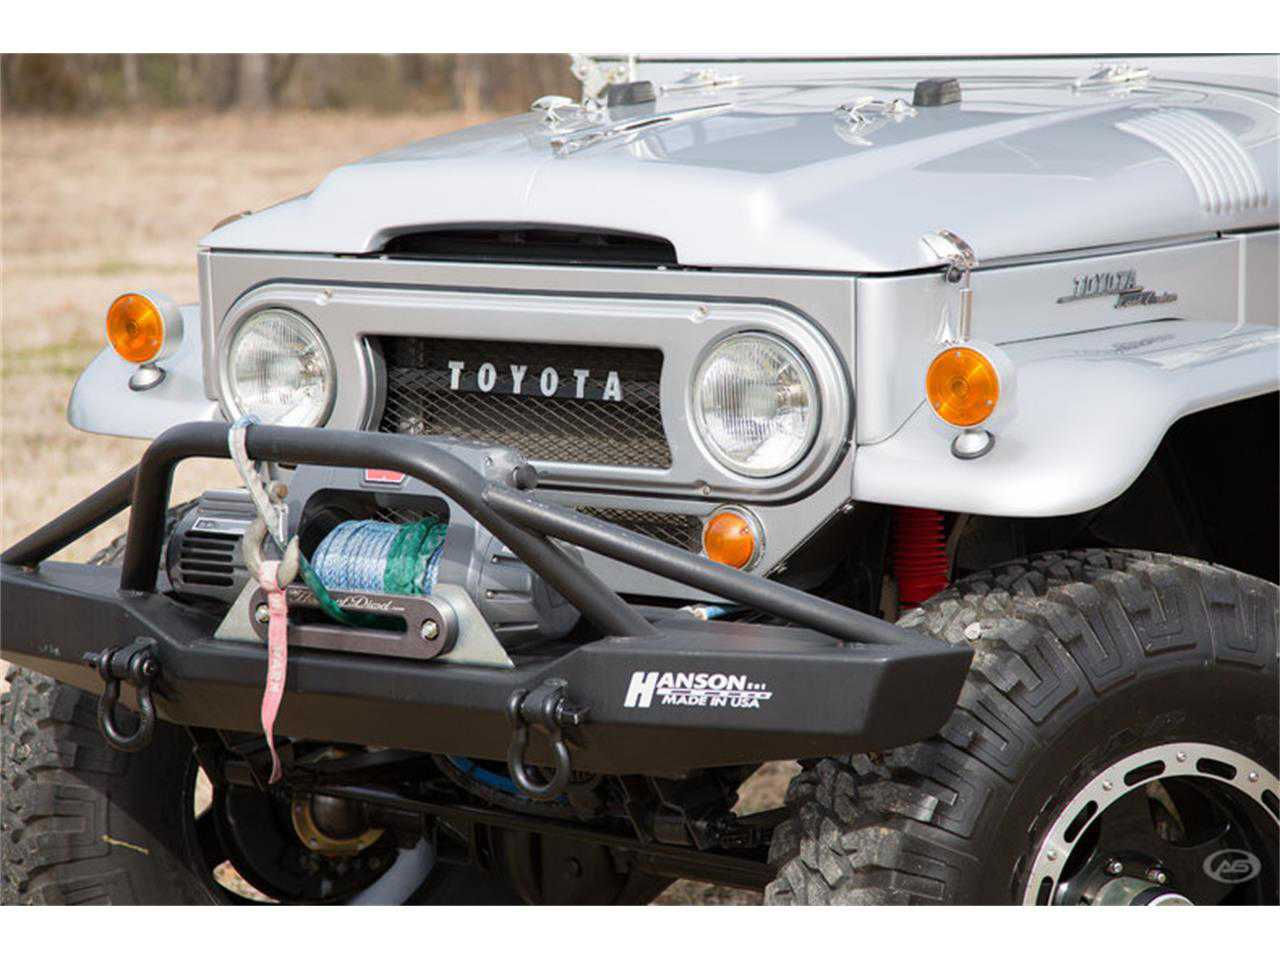 1965 Toyota Land Cruiser Fj45 Pickup For Sale In Collierville Tn